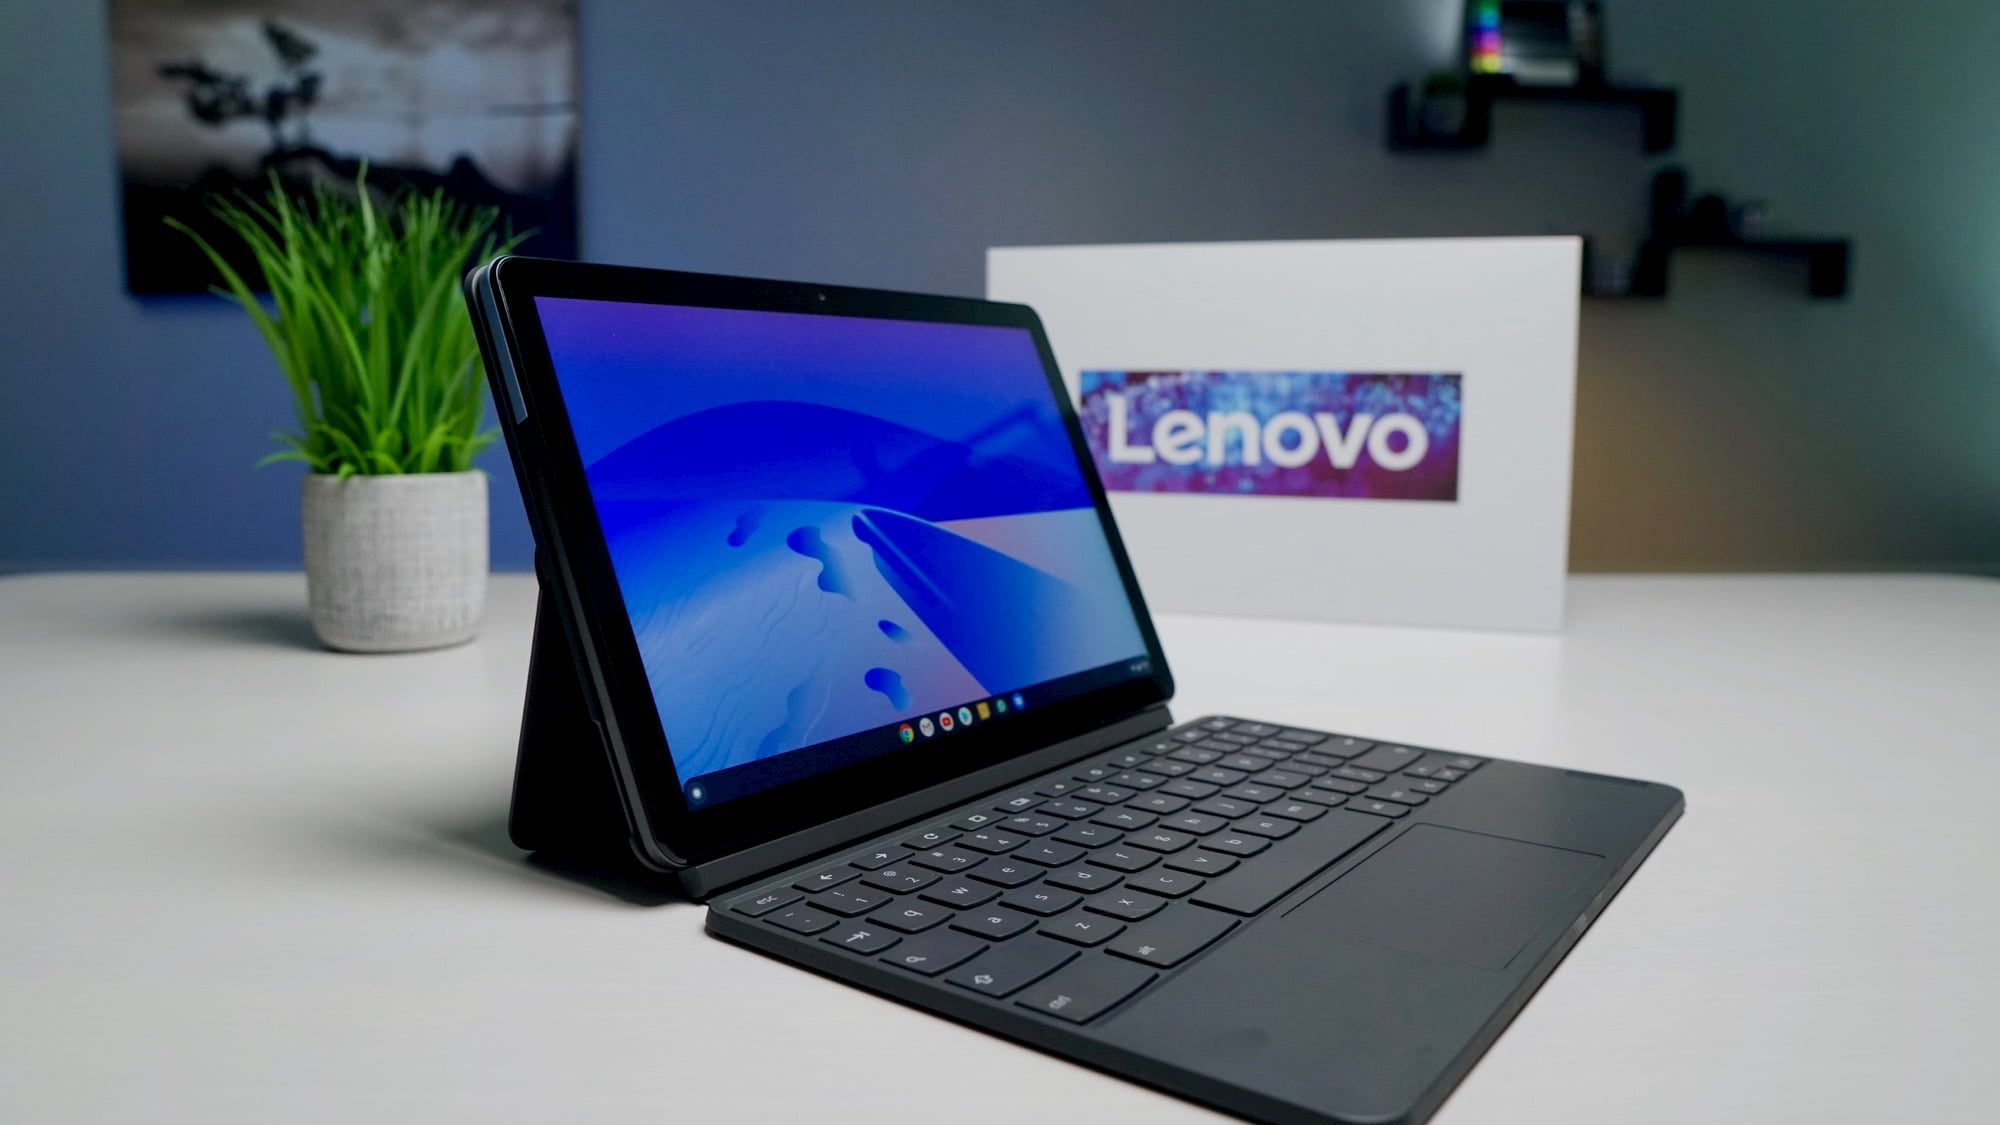 Deal Alert: Grab the Chromebook Duet Tablet from Lenovo for $243